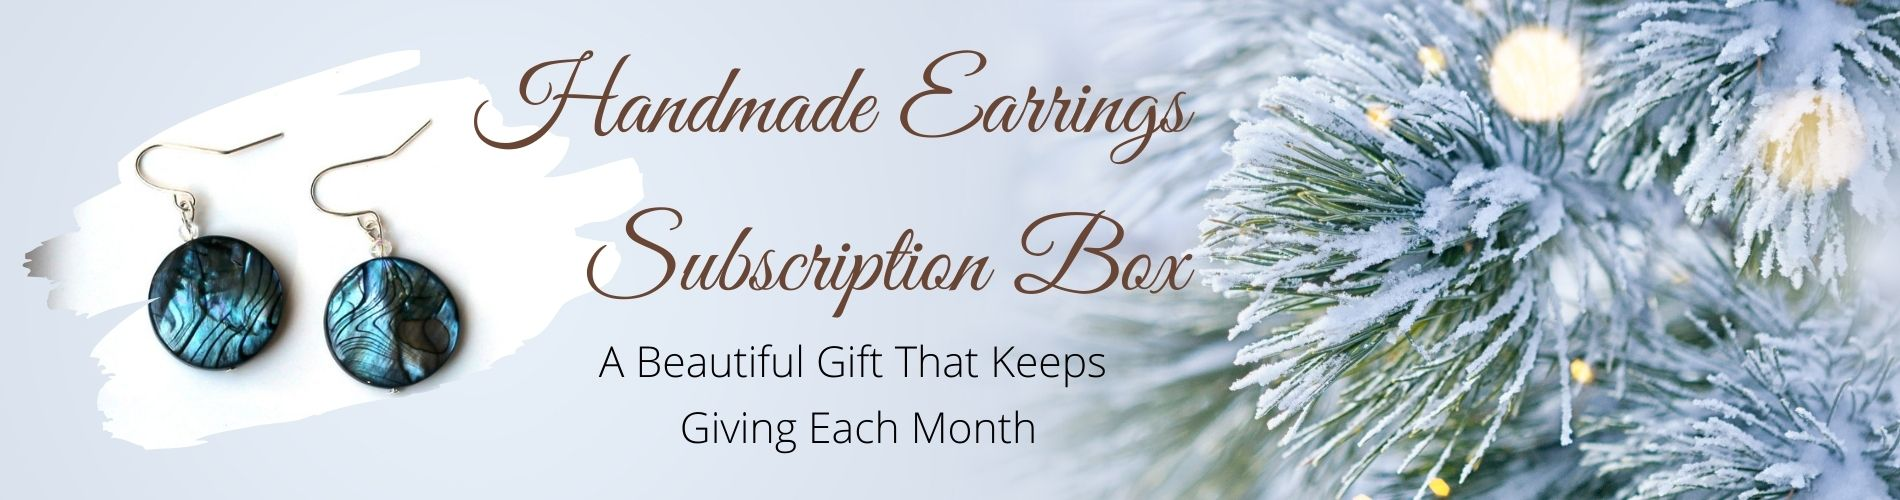 Handmade Earrings Subscriptions Box Gift